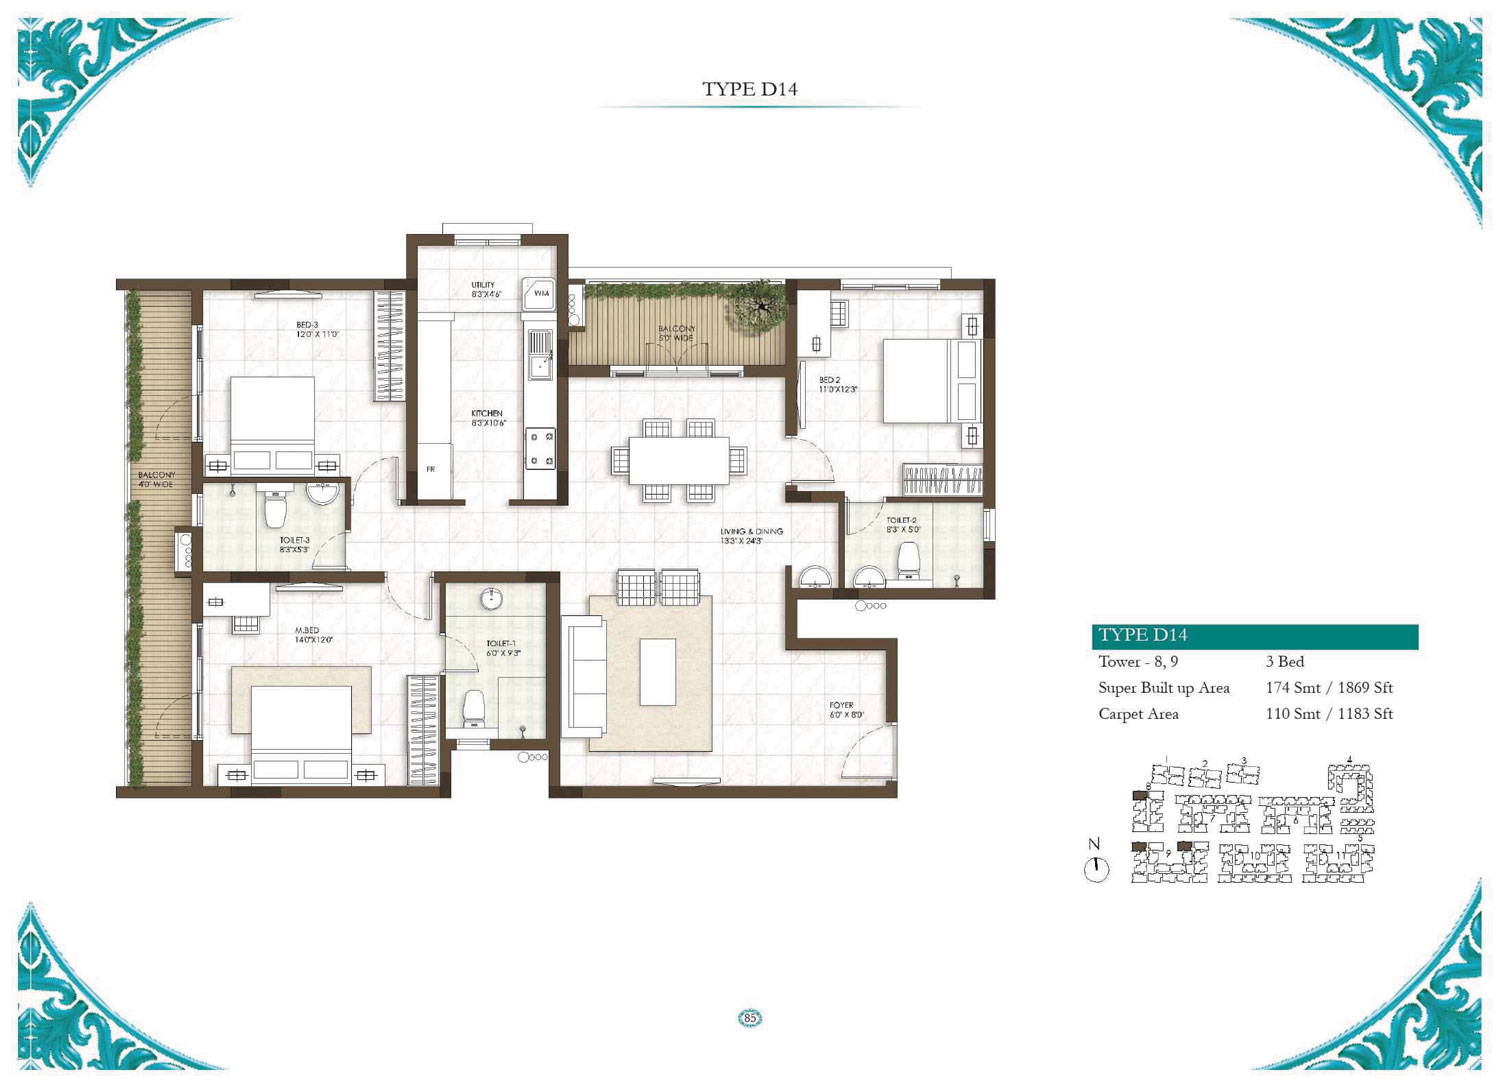 Type D14 - 3 Bed - 1869 Sq Ft